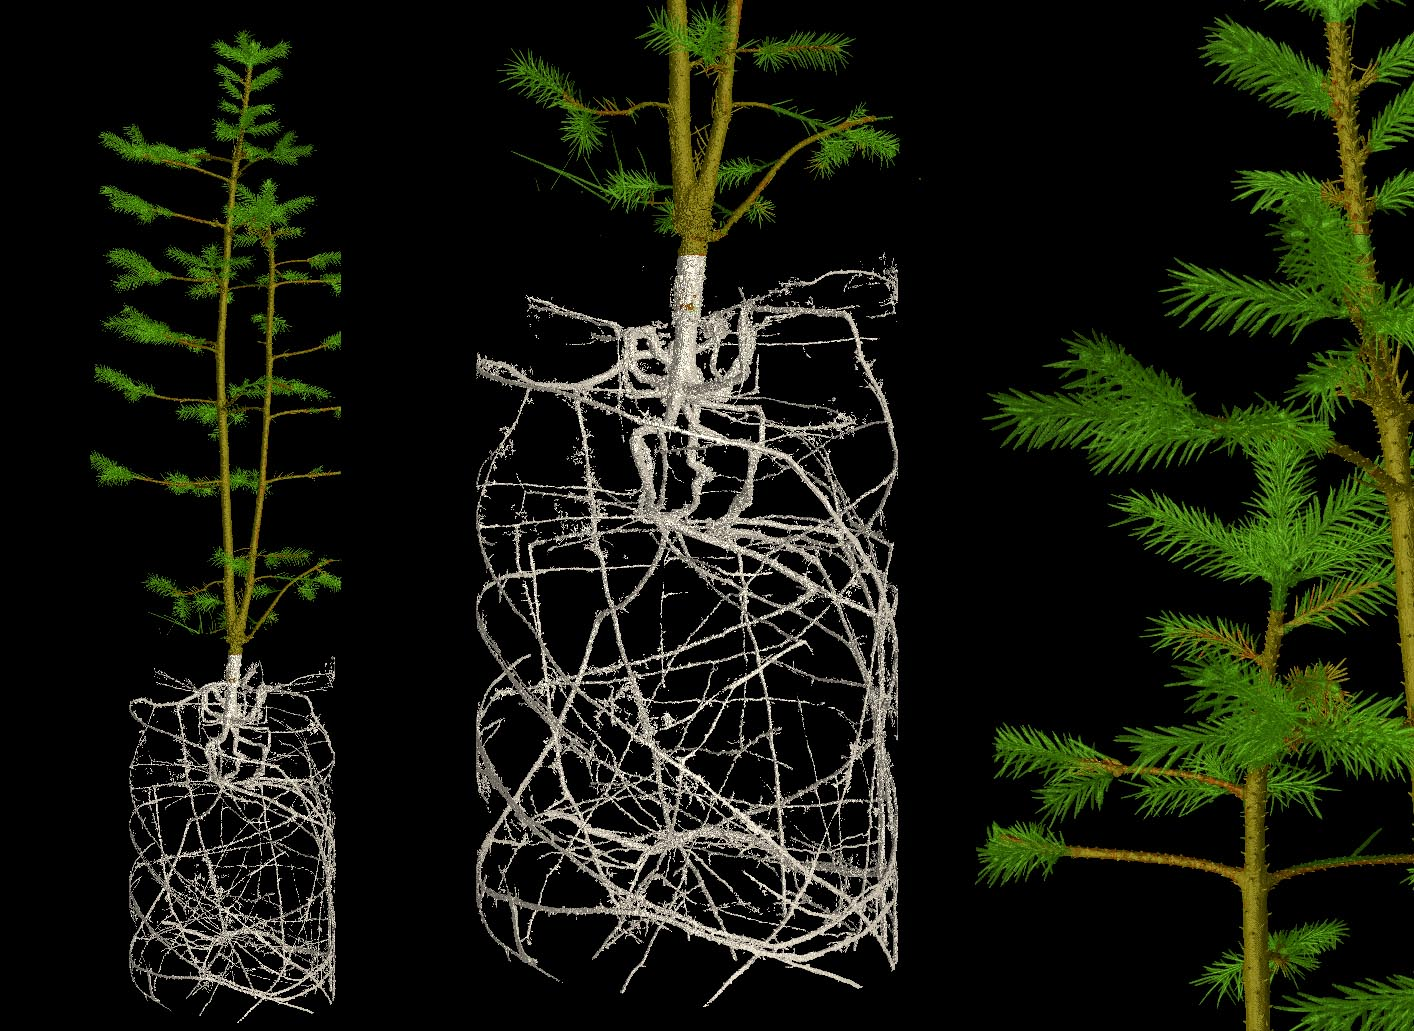 The Norway spruce, traditionally used as a Christmas tree, has evolved to survive the sub-zero temperatures of the Arctic winter. Their thin needles reduce water loss and their roots use as much space as they can. The roots of this two-year-old sapling have been limited by its pot. Image credit - Brian Atkinson